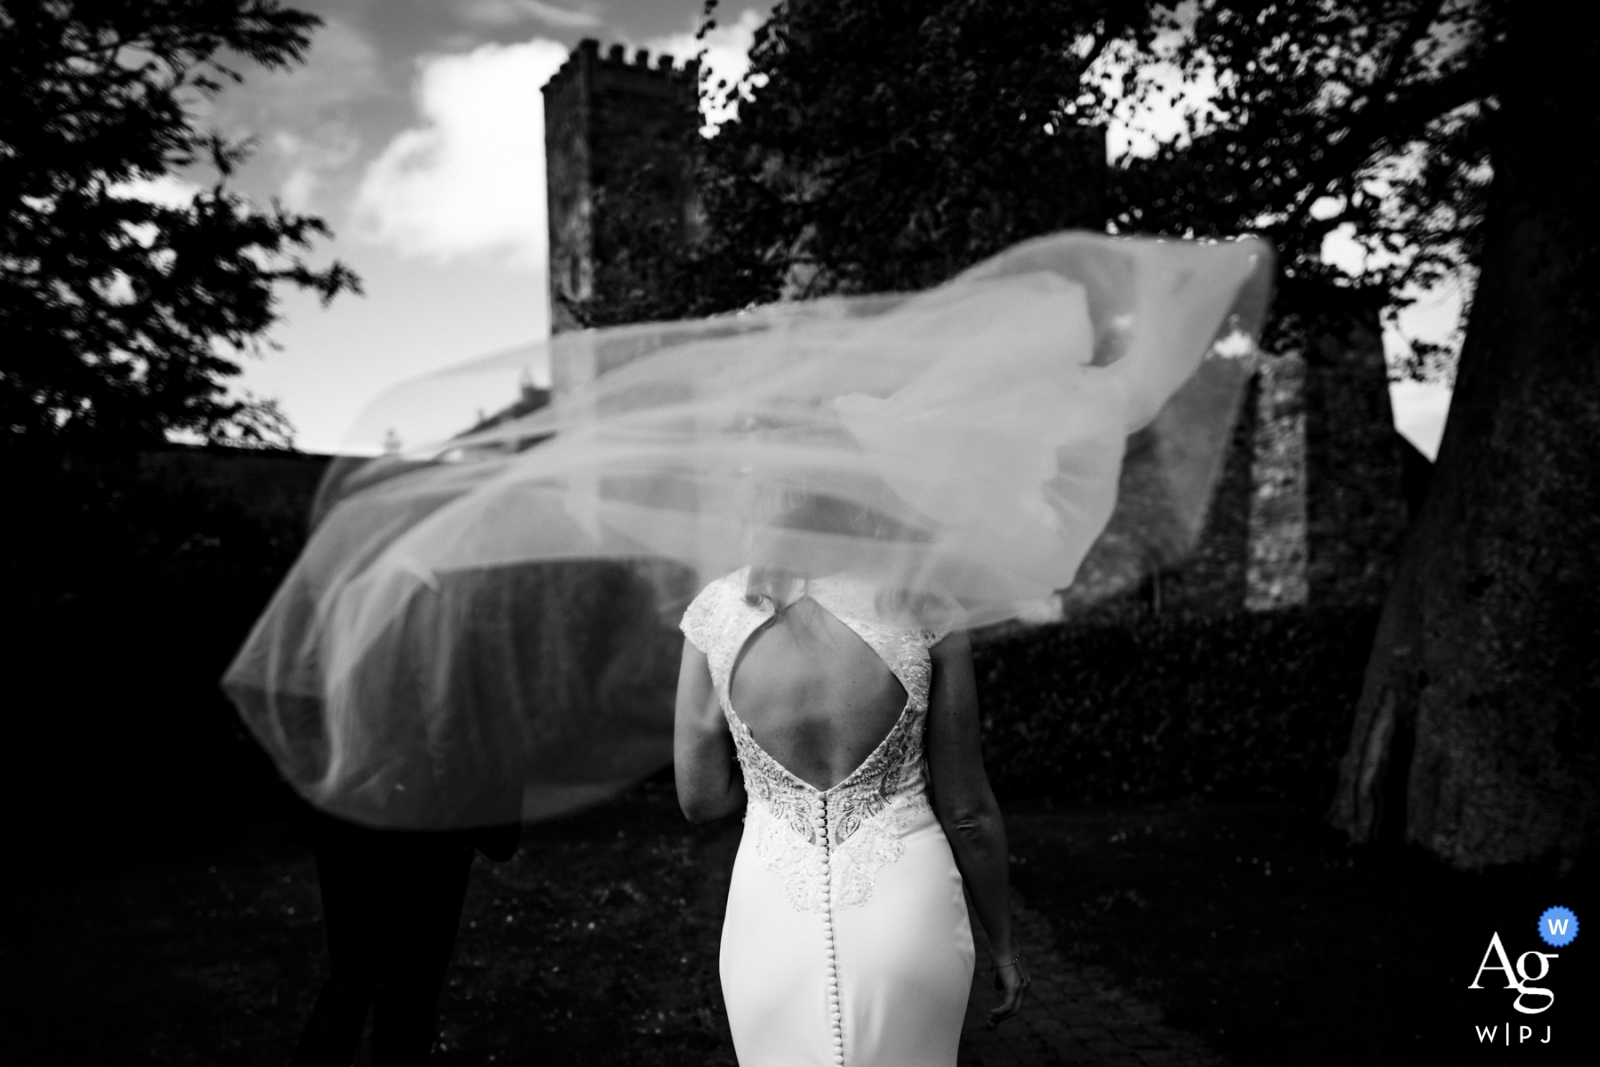 Barberstown Castle, Ireland fine art, documentary wedding photographer - Veil blowing in the wind